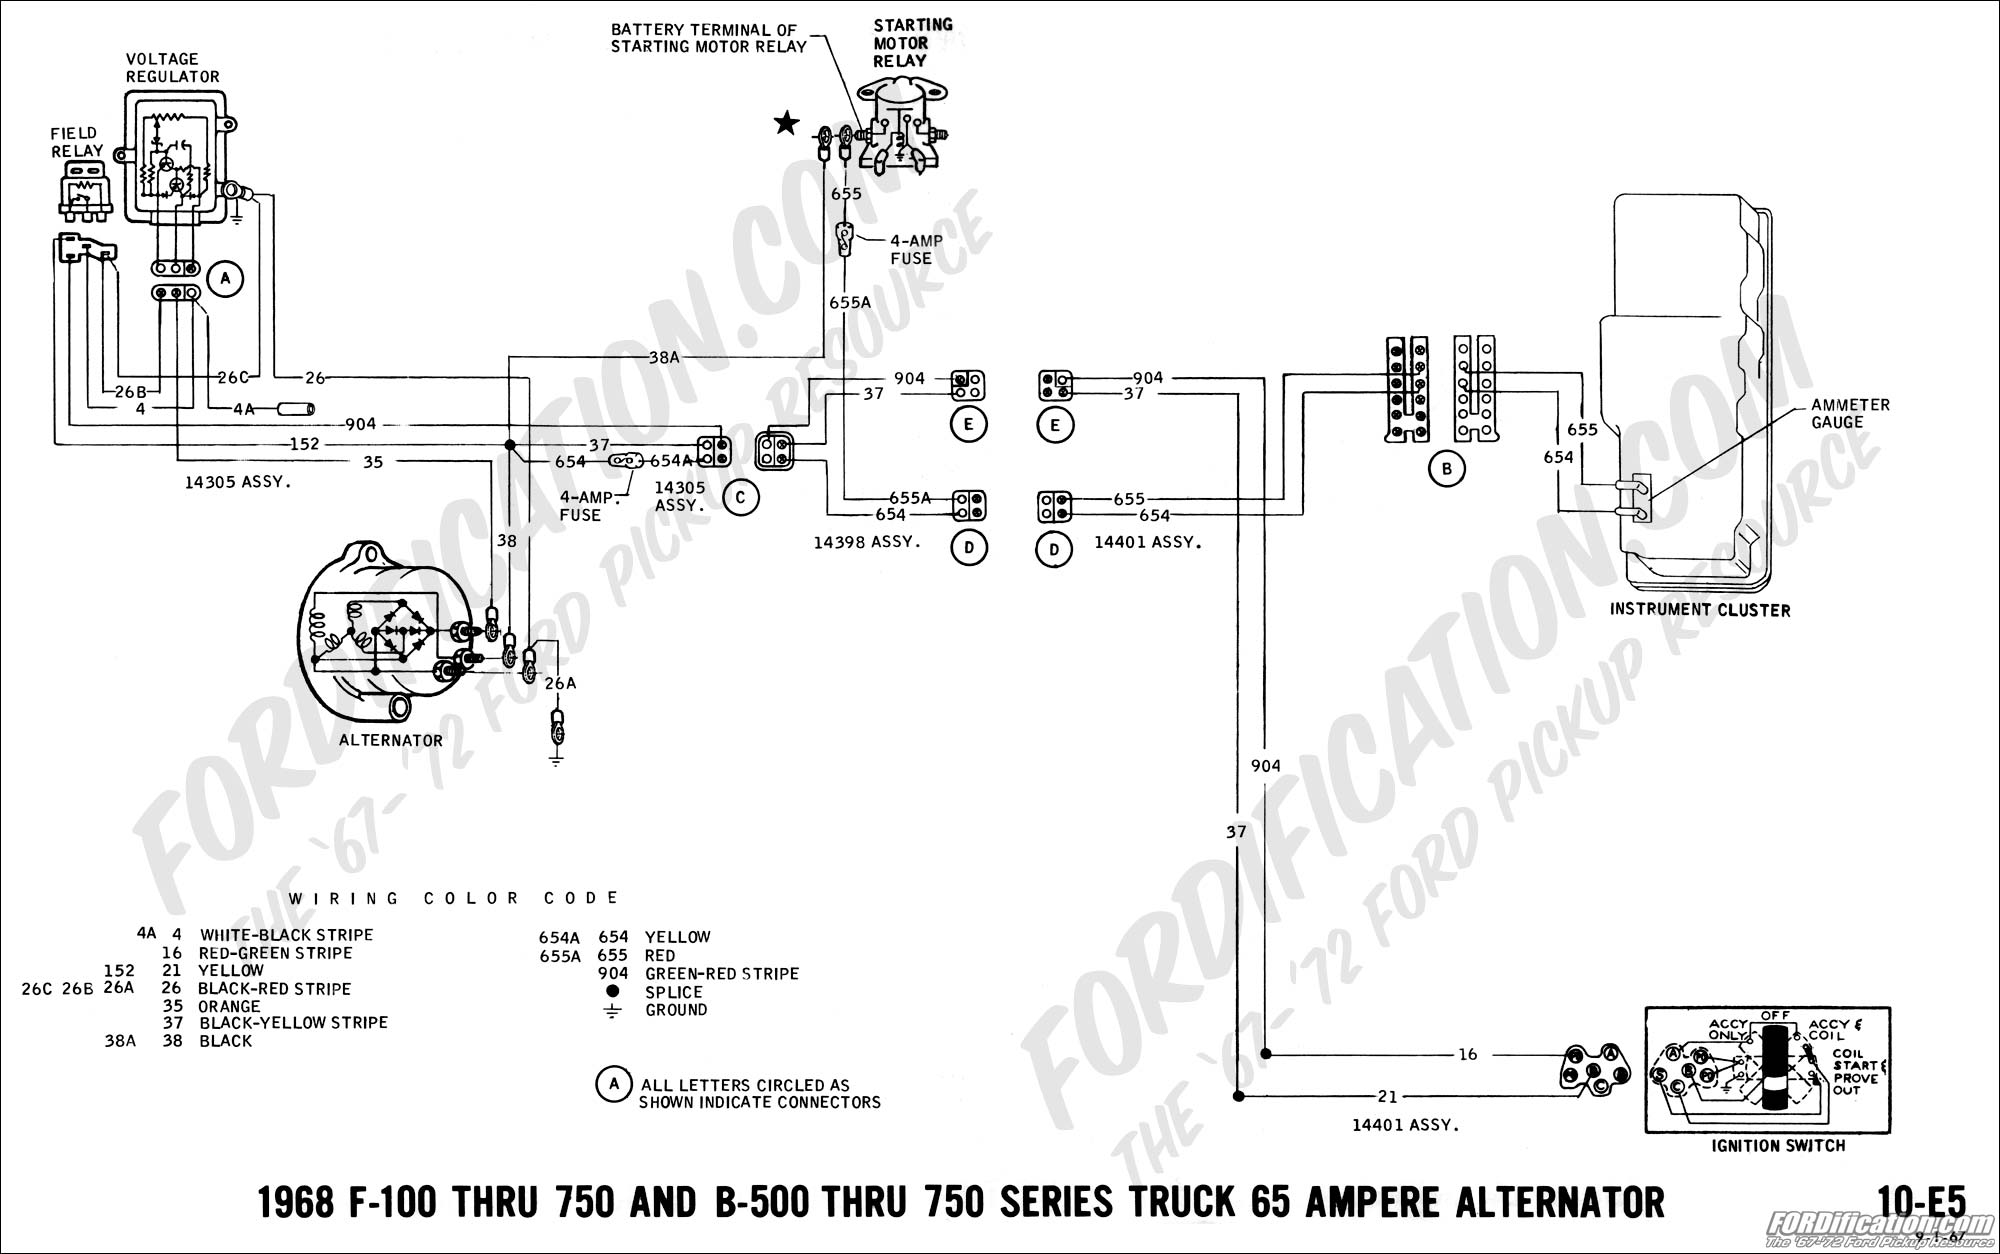 68 07 ford truck technical drawings and schematics section h wiring 1971 ford f250 wiring diagram at bayanpartner.co